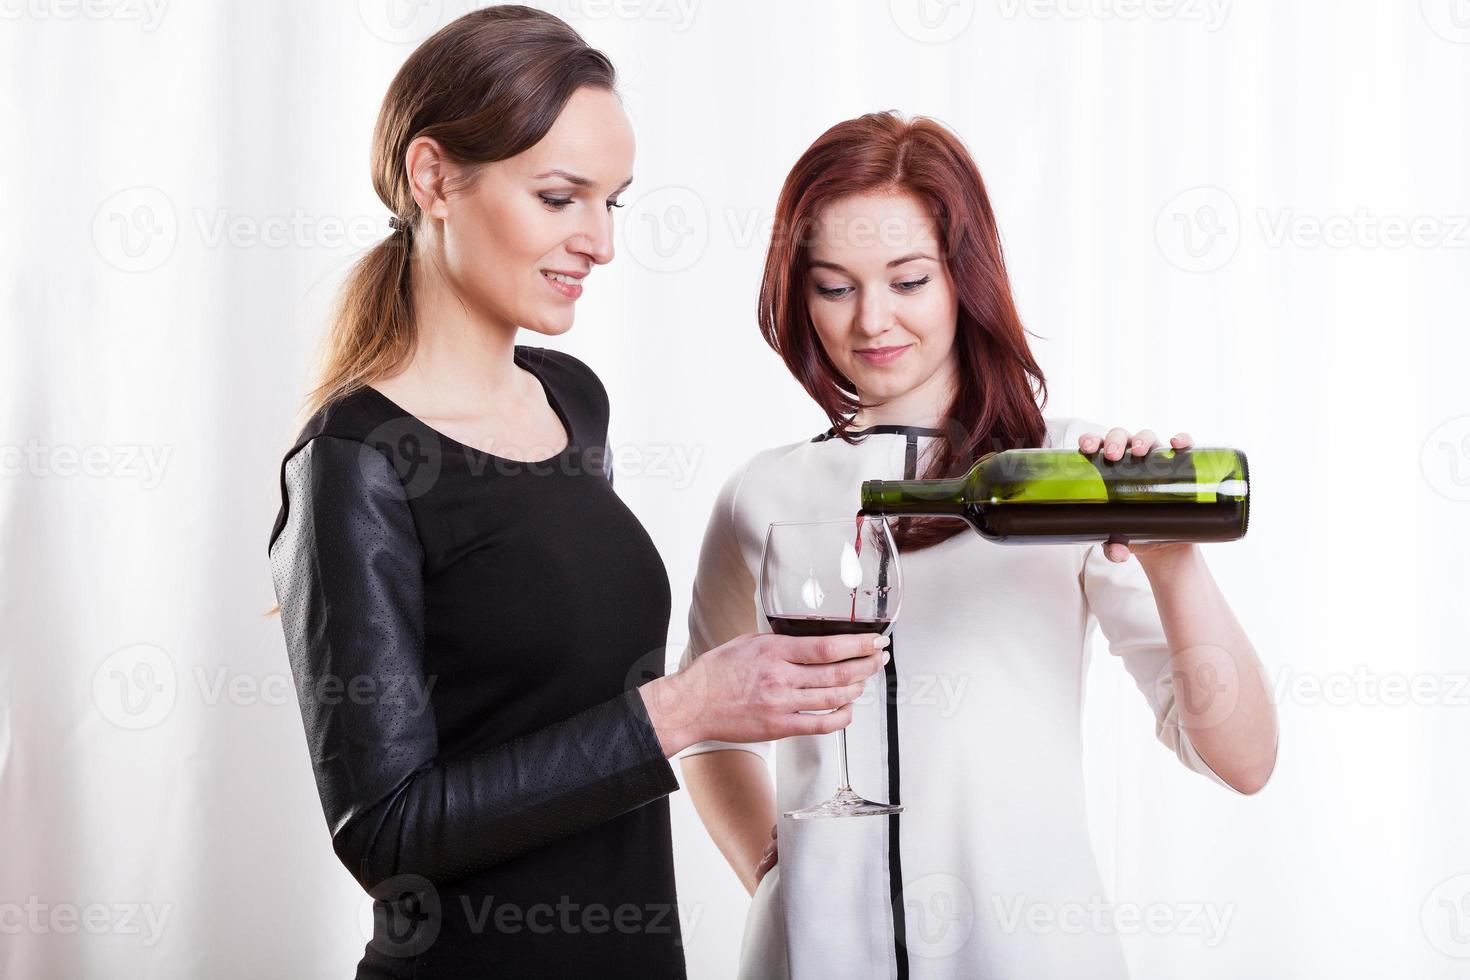 amies boire du vin rouge photo